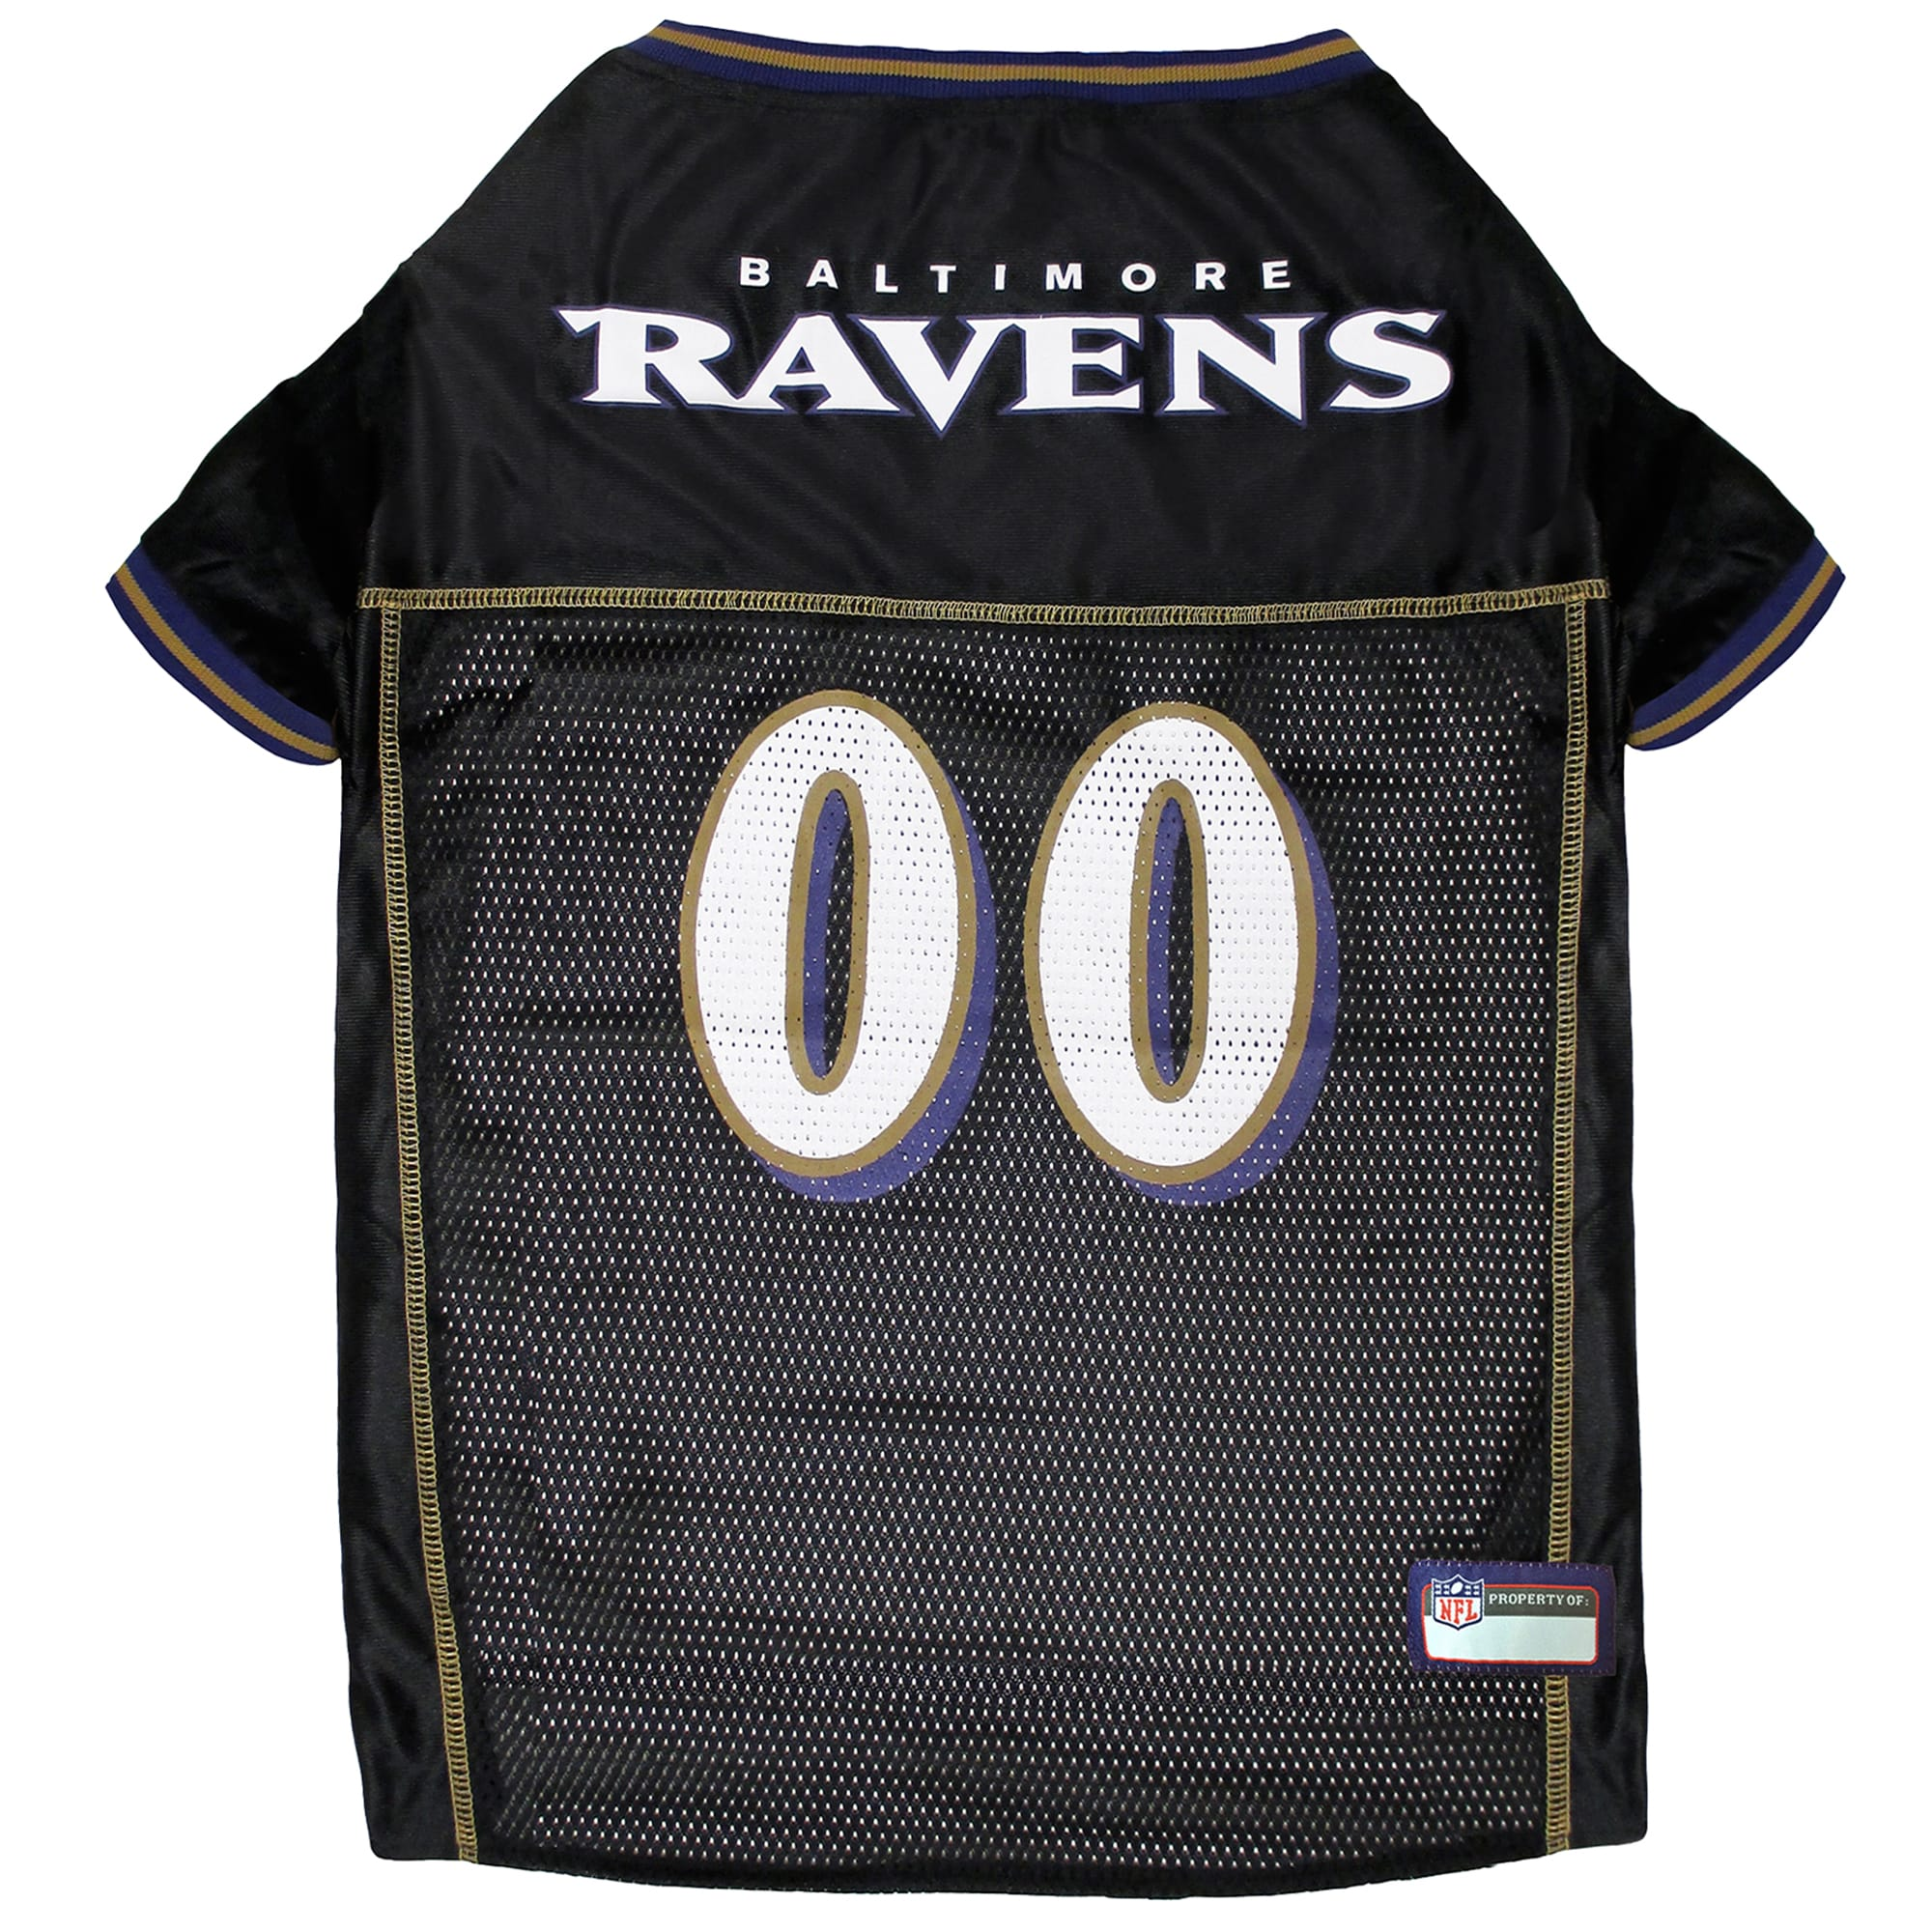 Pets First Baltimore Ravens Nfl Mesh Pet Jersey X Small Petco